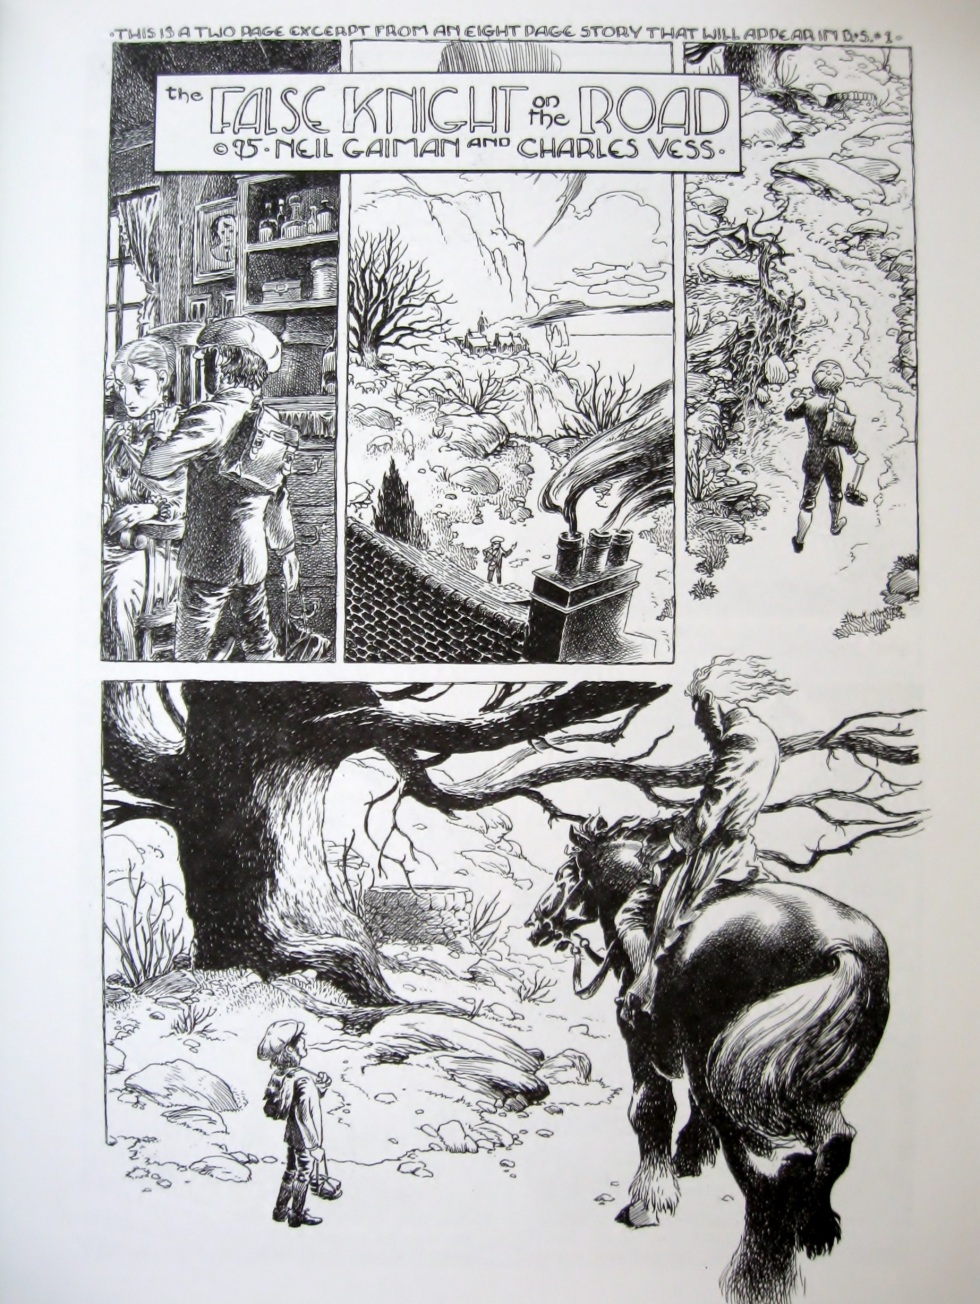 Charles Vess Book of Ballads and Sagas Promo booklet #1